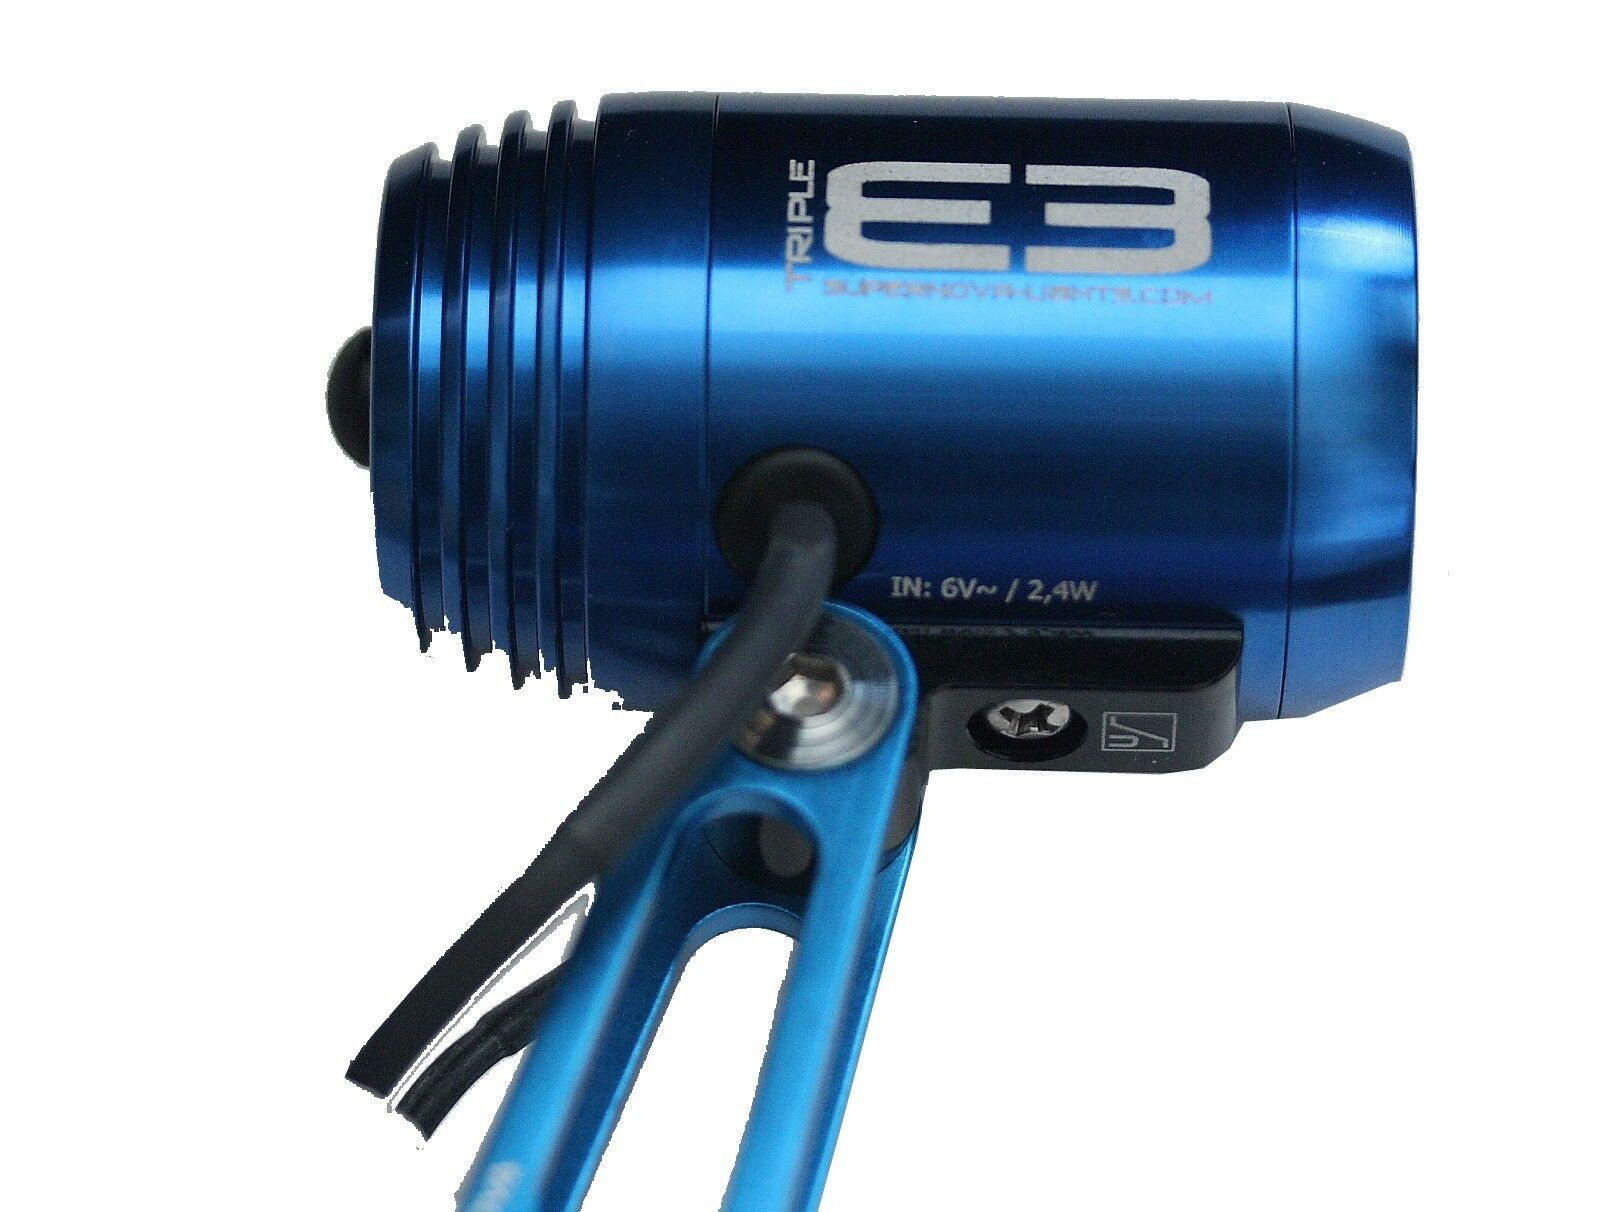 Supernovas  Faro Anteriore E3 Triplo bluee 800 Lumen  for your style of play at the cheapest prices